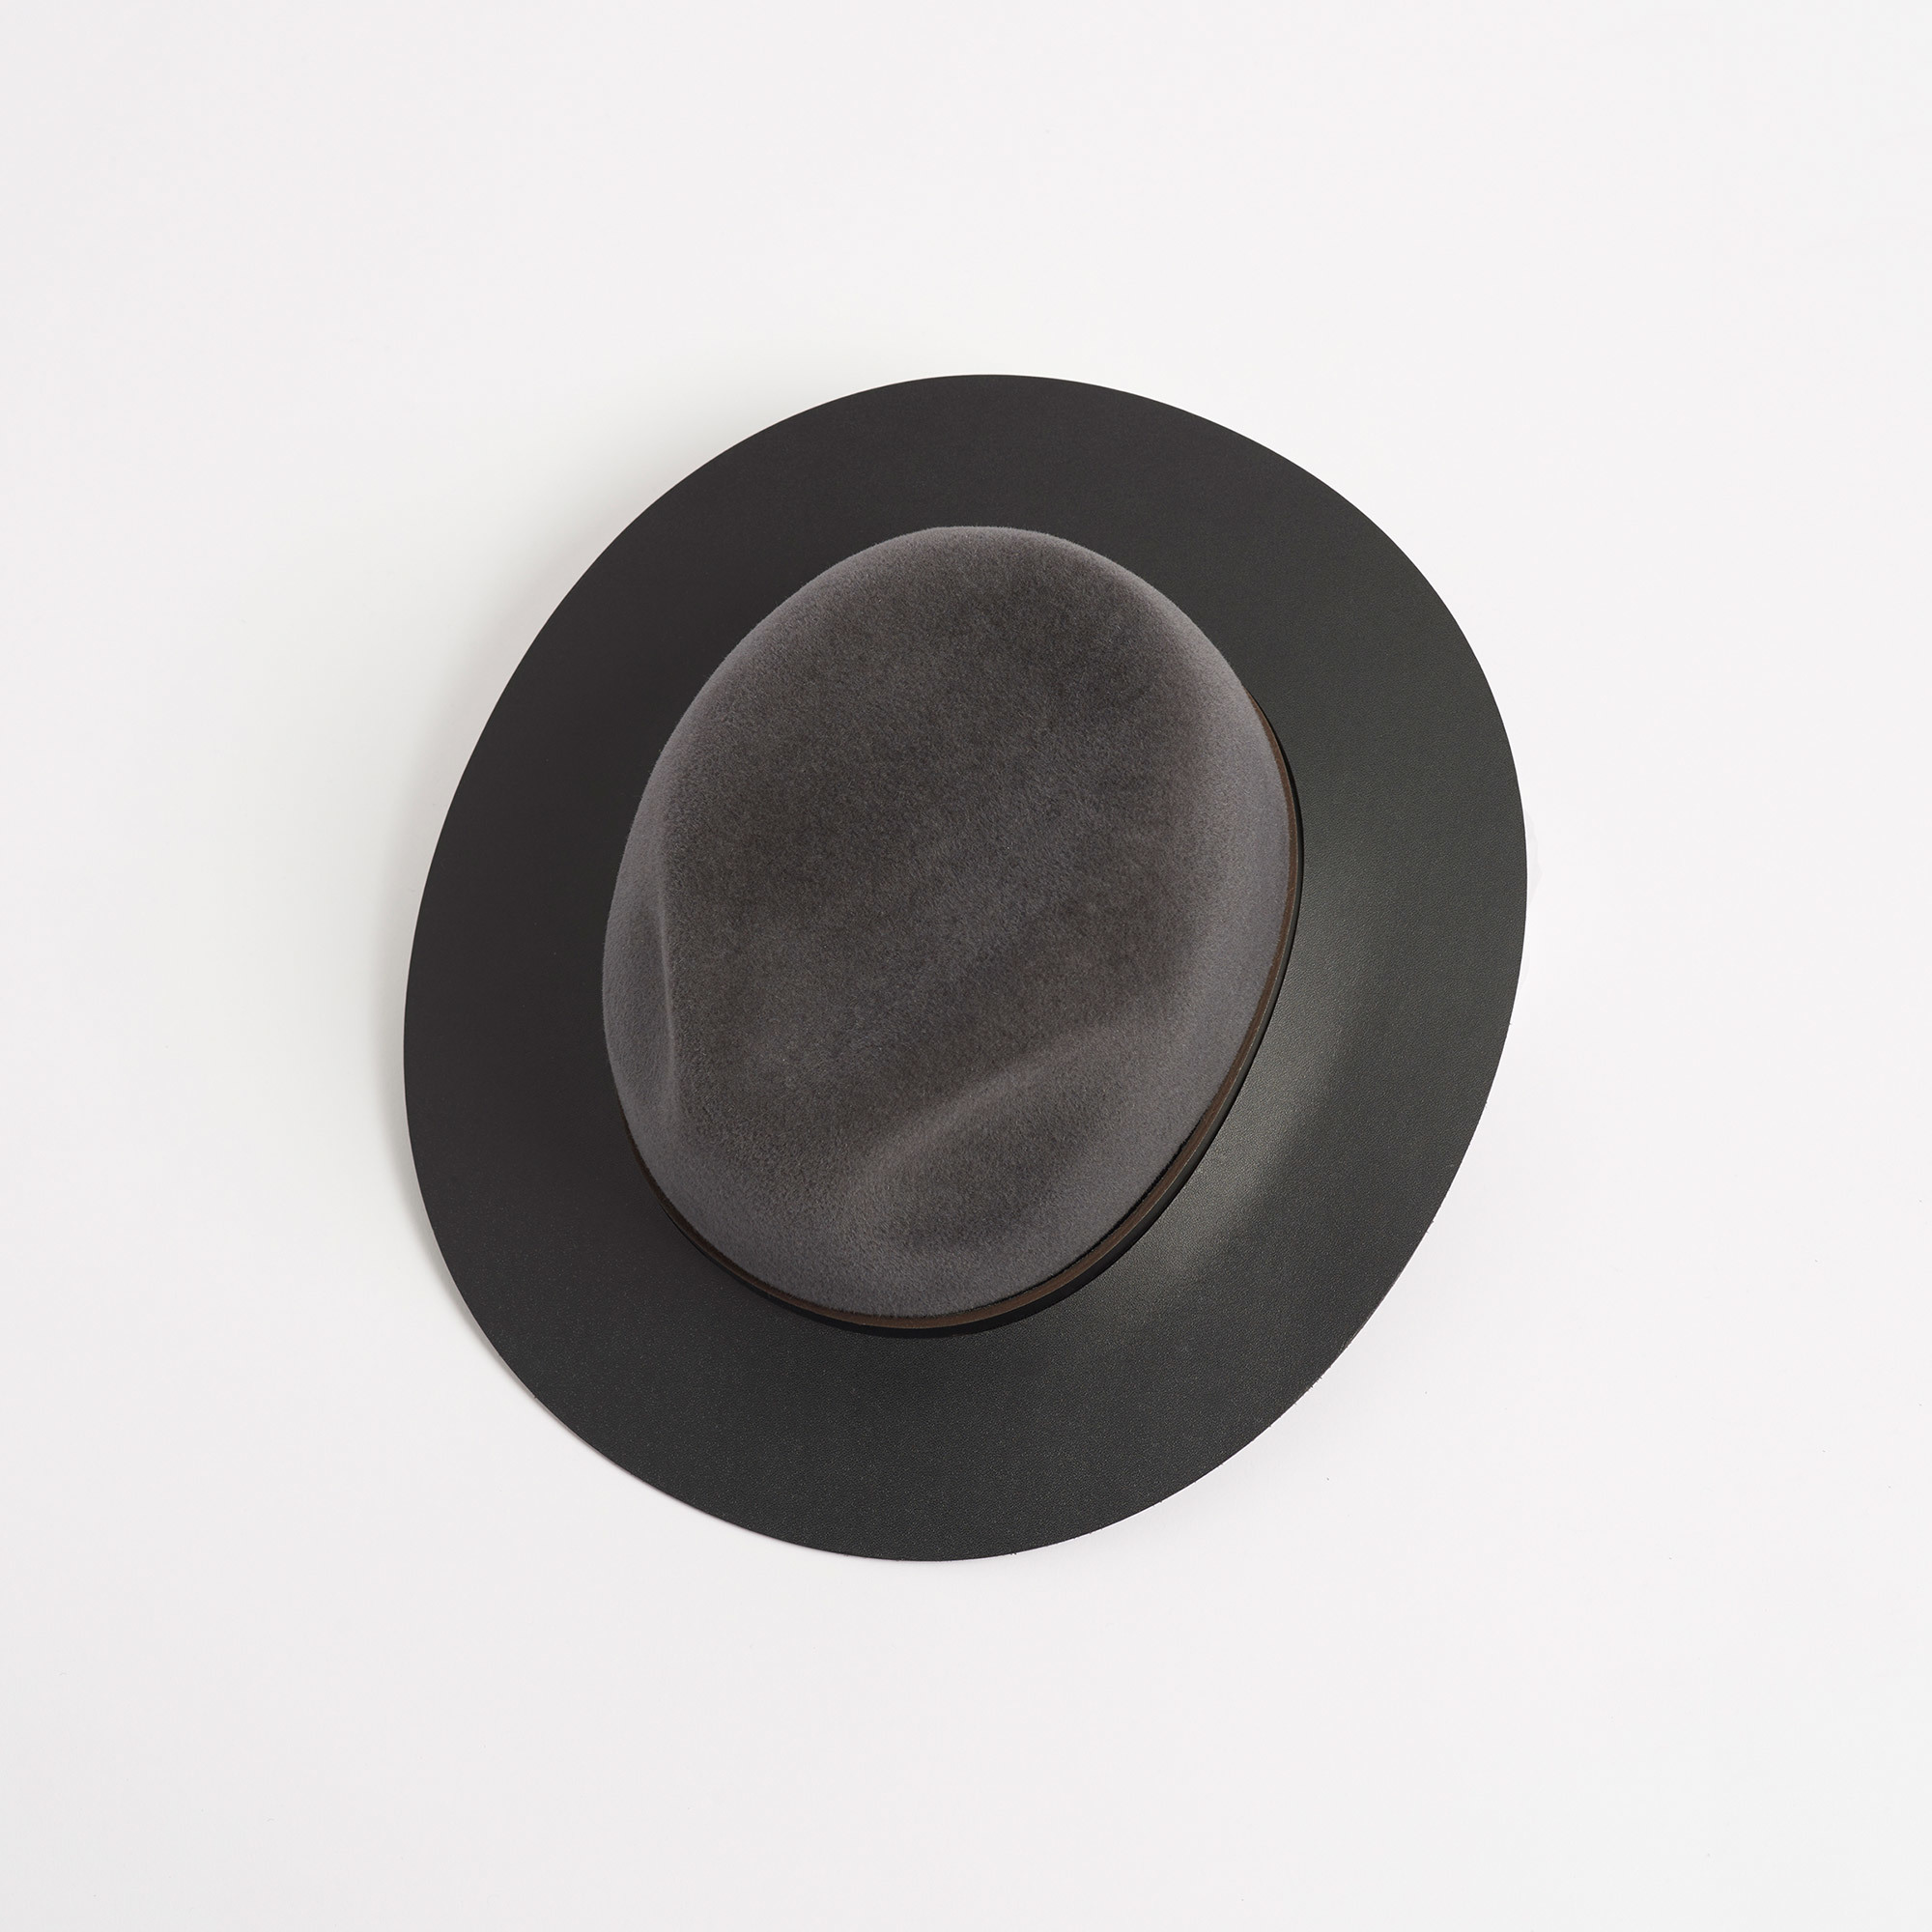 20bada218 Chelsea Trilby Hat with Leather Brim - S / / - Chelsea Trilby Hat with  Leather Brim